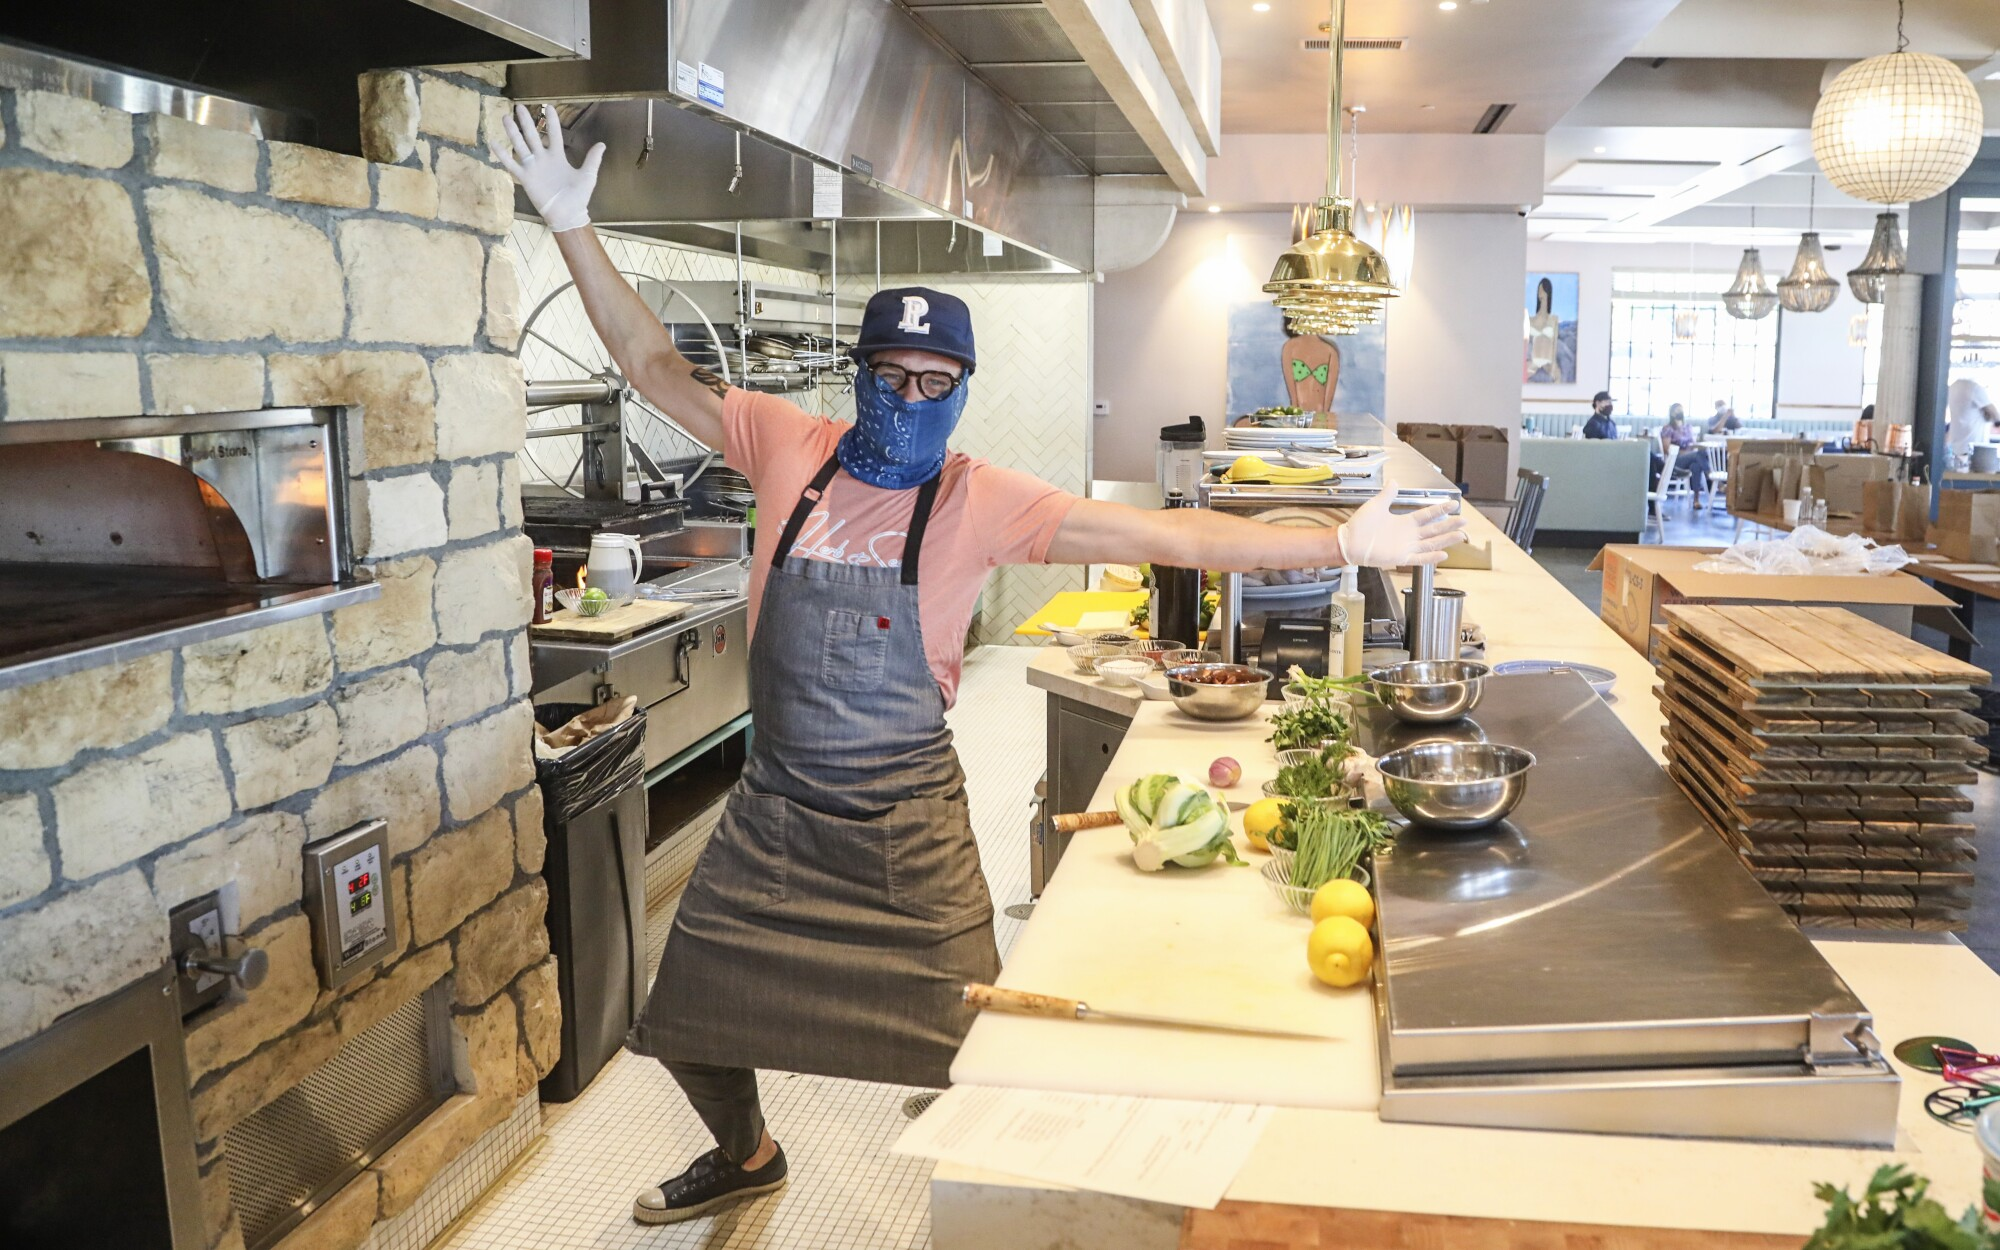 San Diego restaurateur Brian Malarkey reopens his Herb & Sea restaurant for takeout only, saying he's not ready to resume dining-in at any of his 10 restaurants. He fears that his operation cannot make it financially with much reduced seating due to coronavirus restrictions.